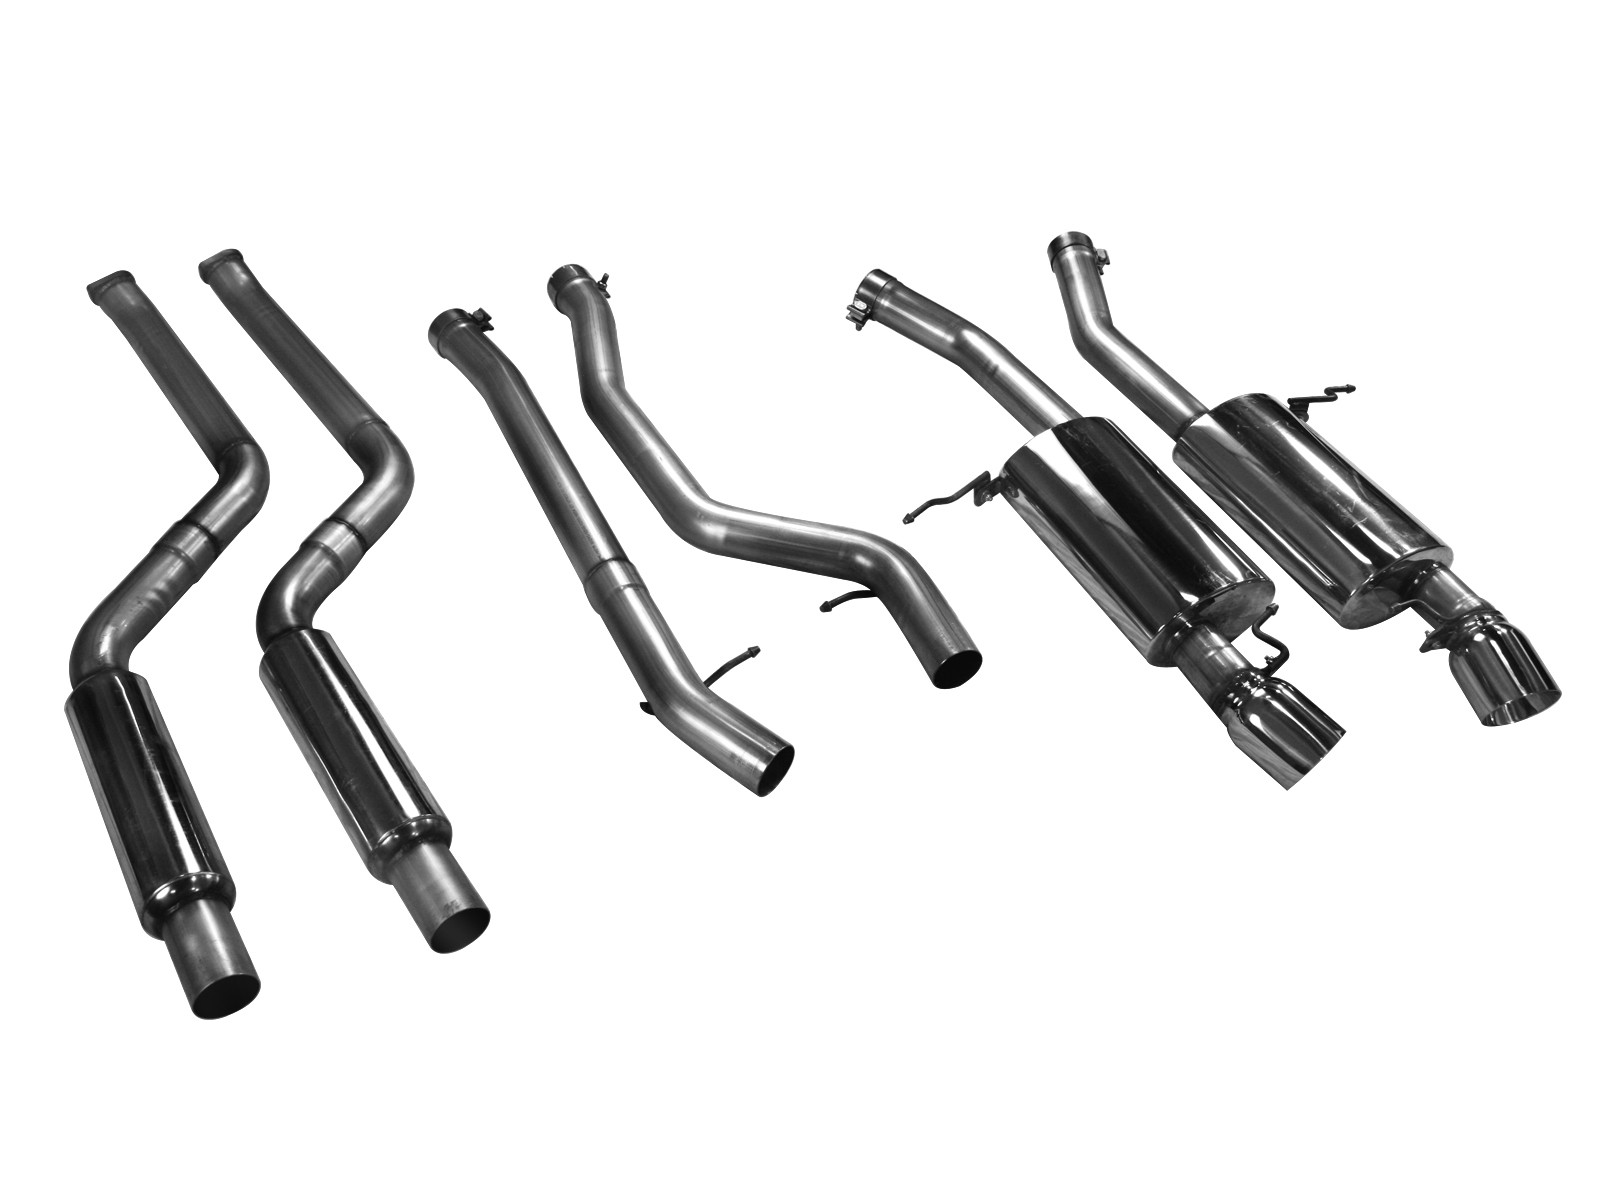 Mach Force Xp 2 3 4 304 Stainless Steel Cat Back Exhaust